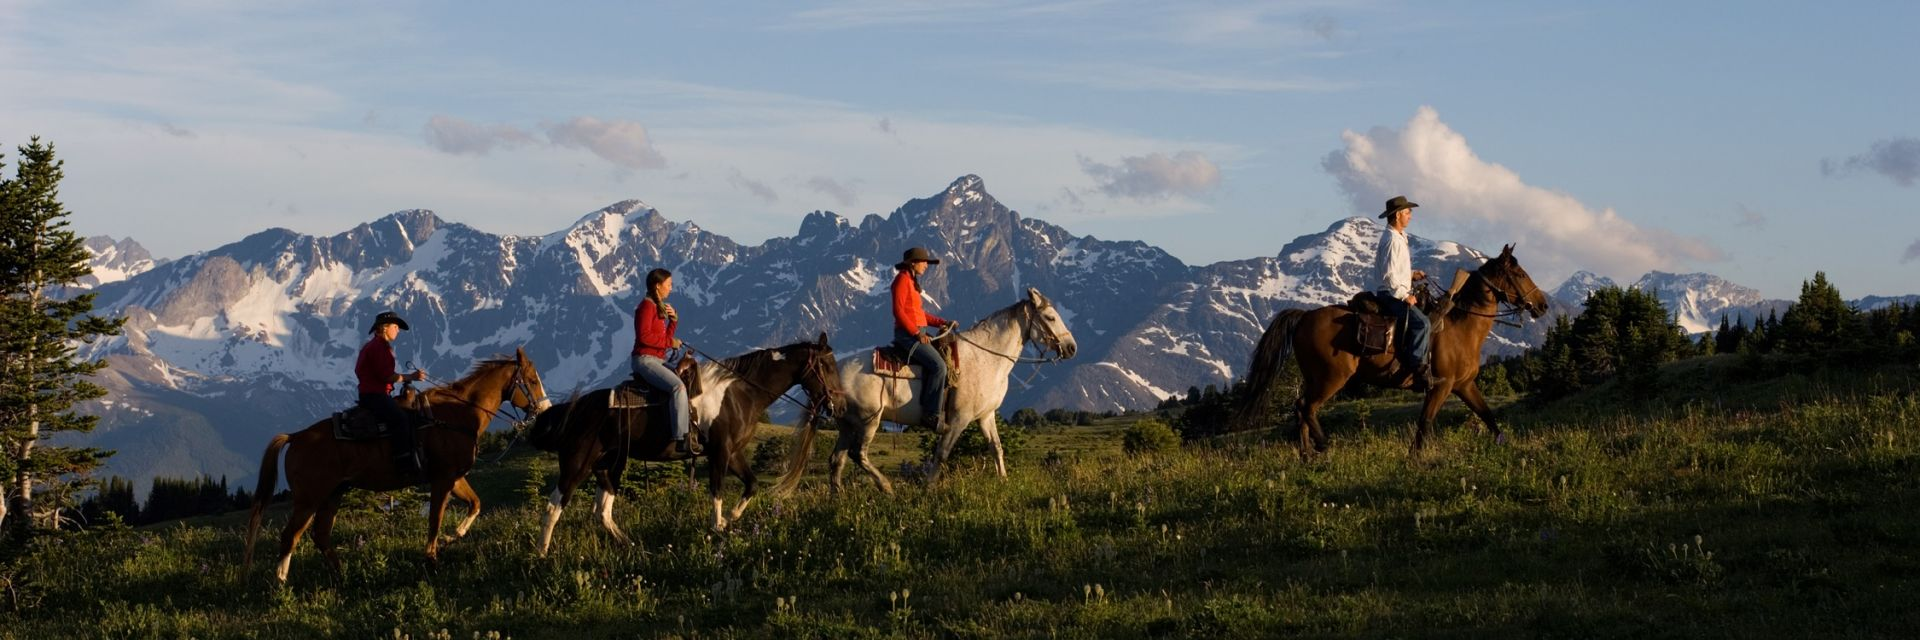 Four horses and riders make their way along a hill with the Potato Mountains in the background